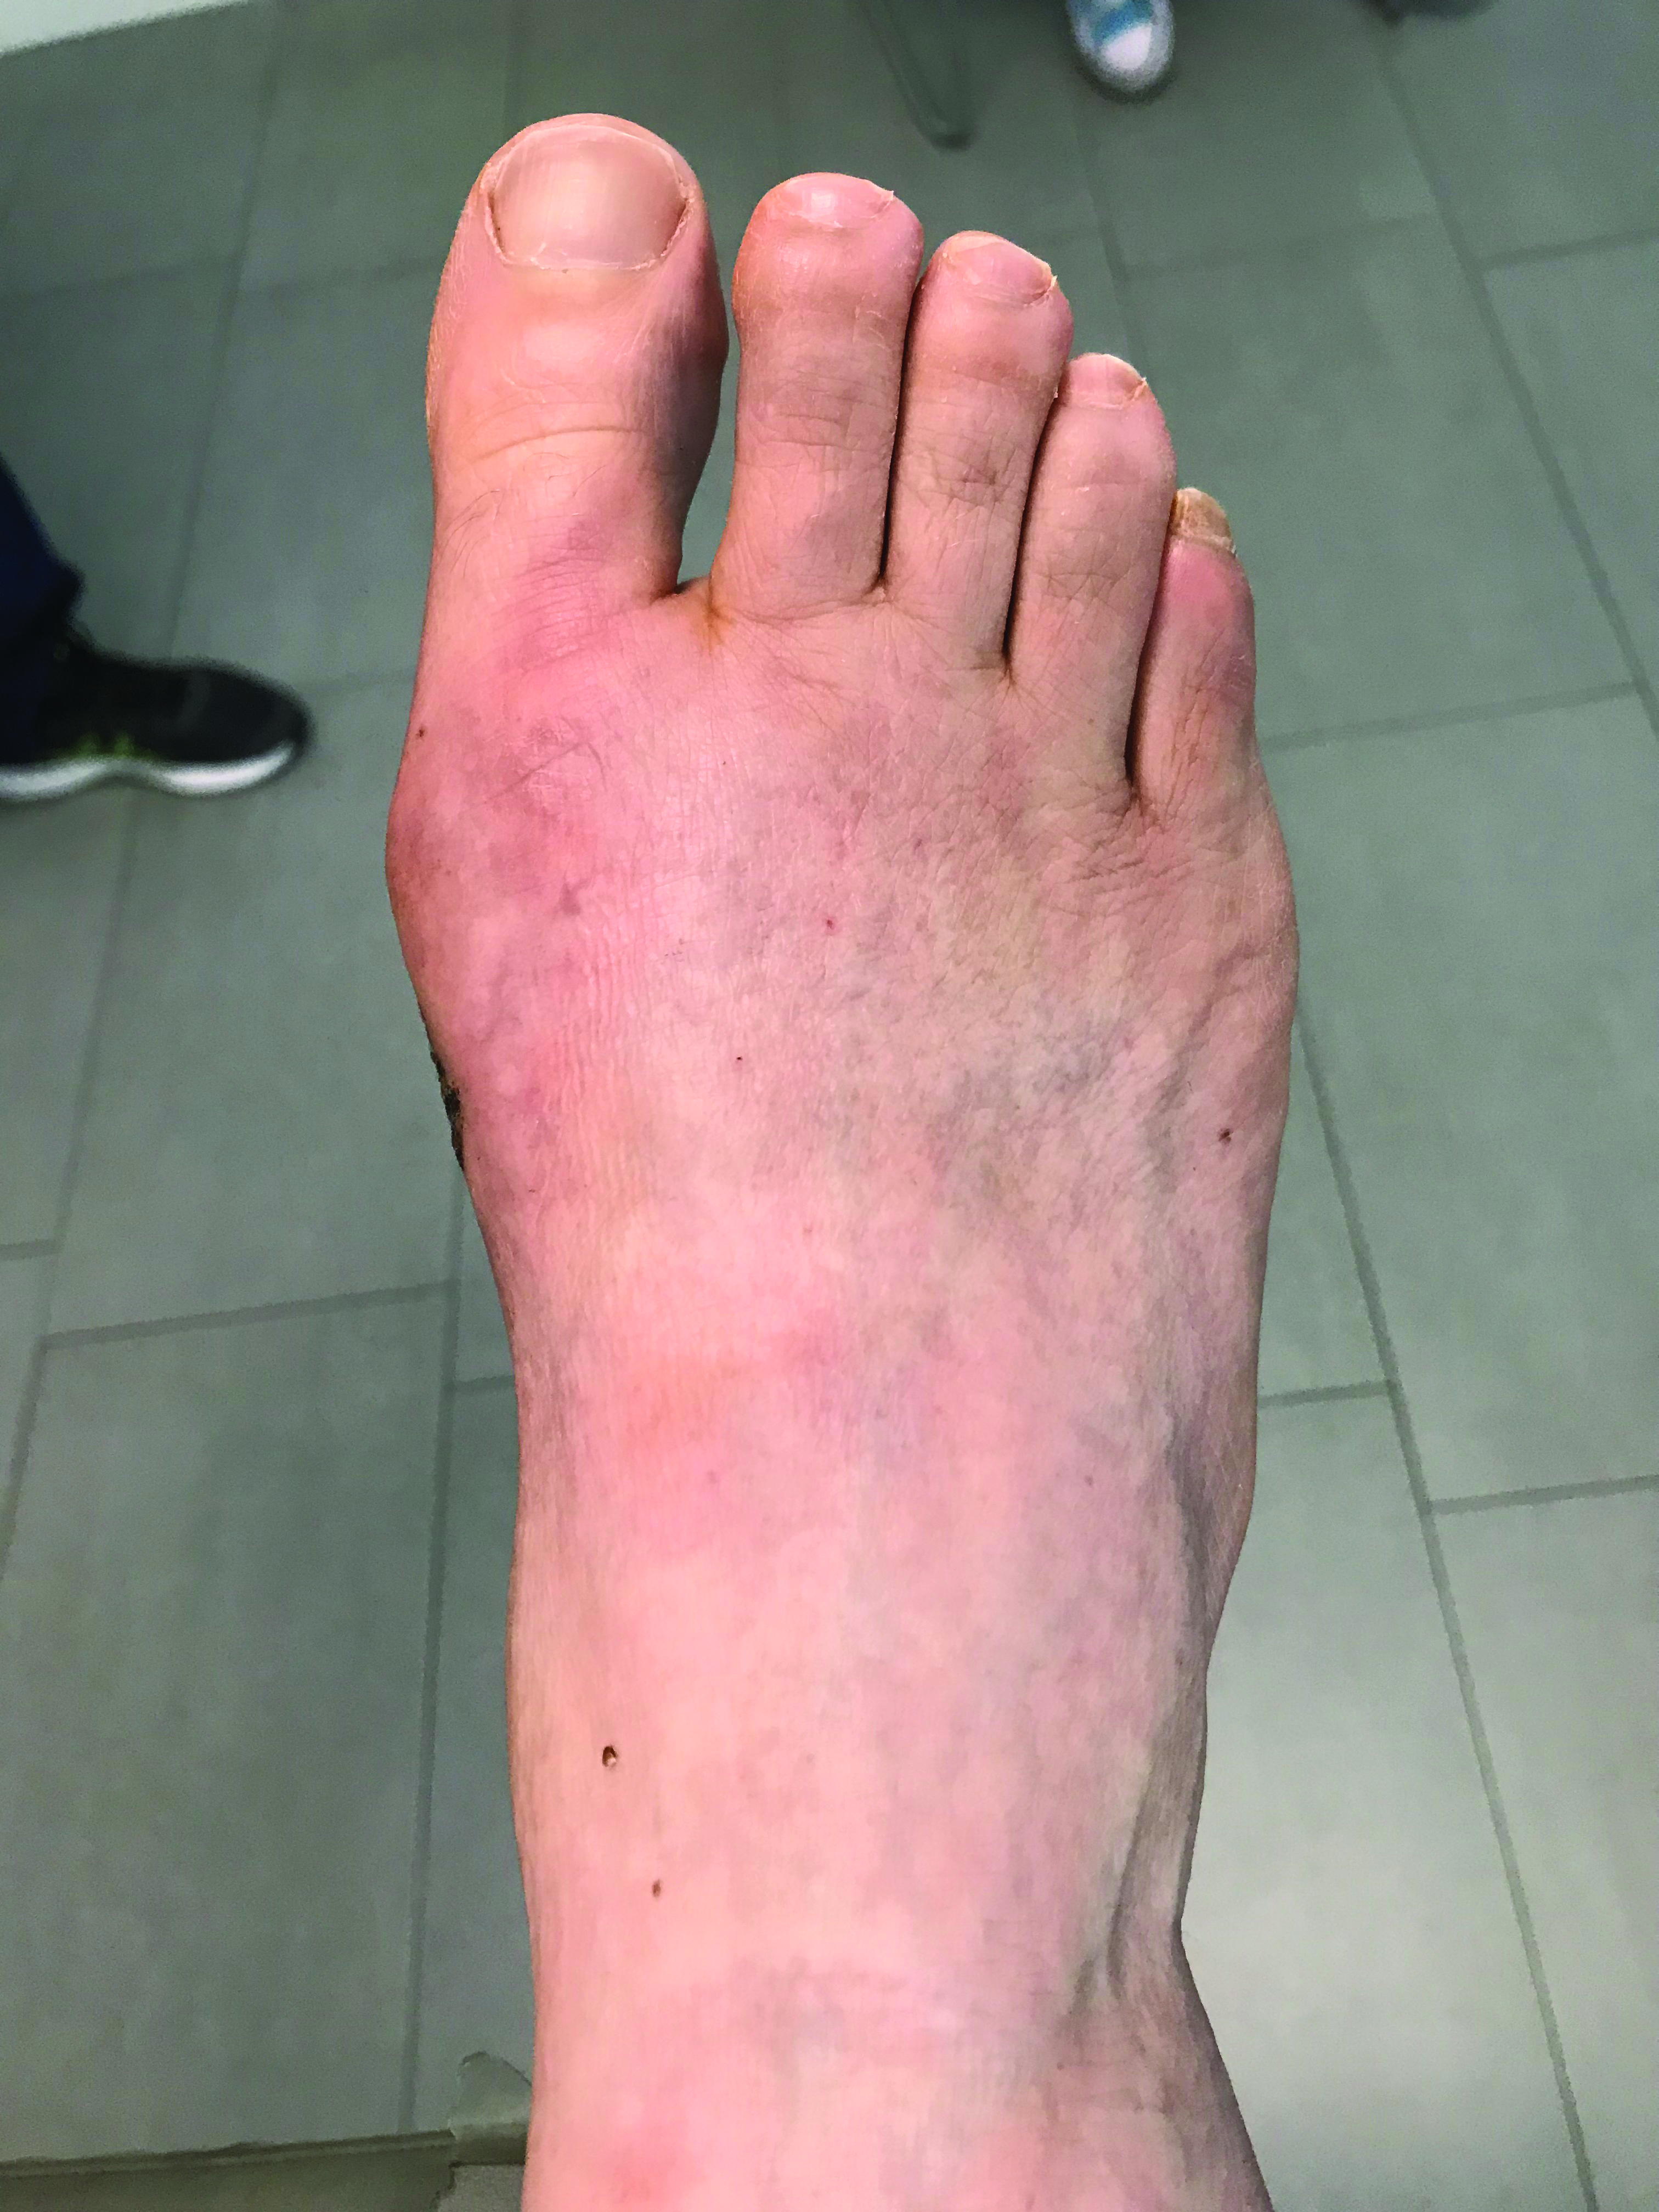 This photo illustrates a patient's foot after undergoing minimally invasive bunion surgery.